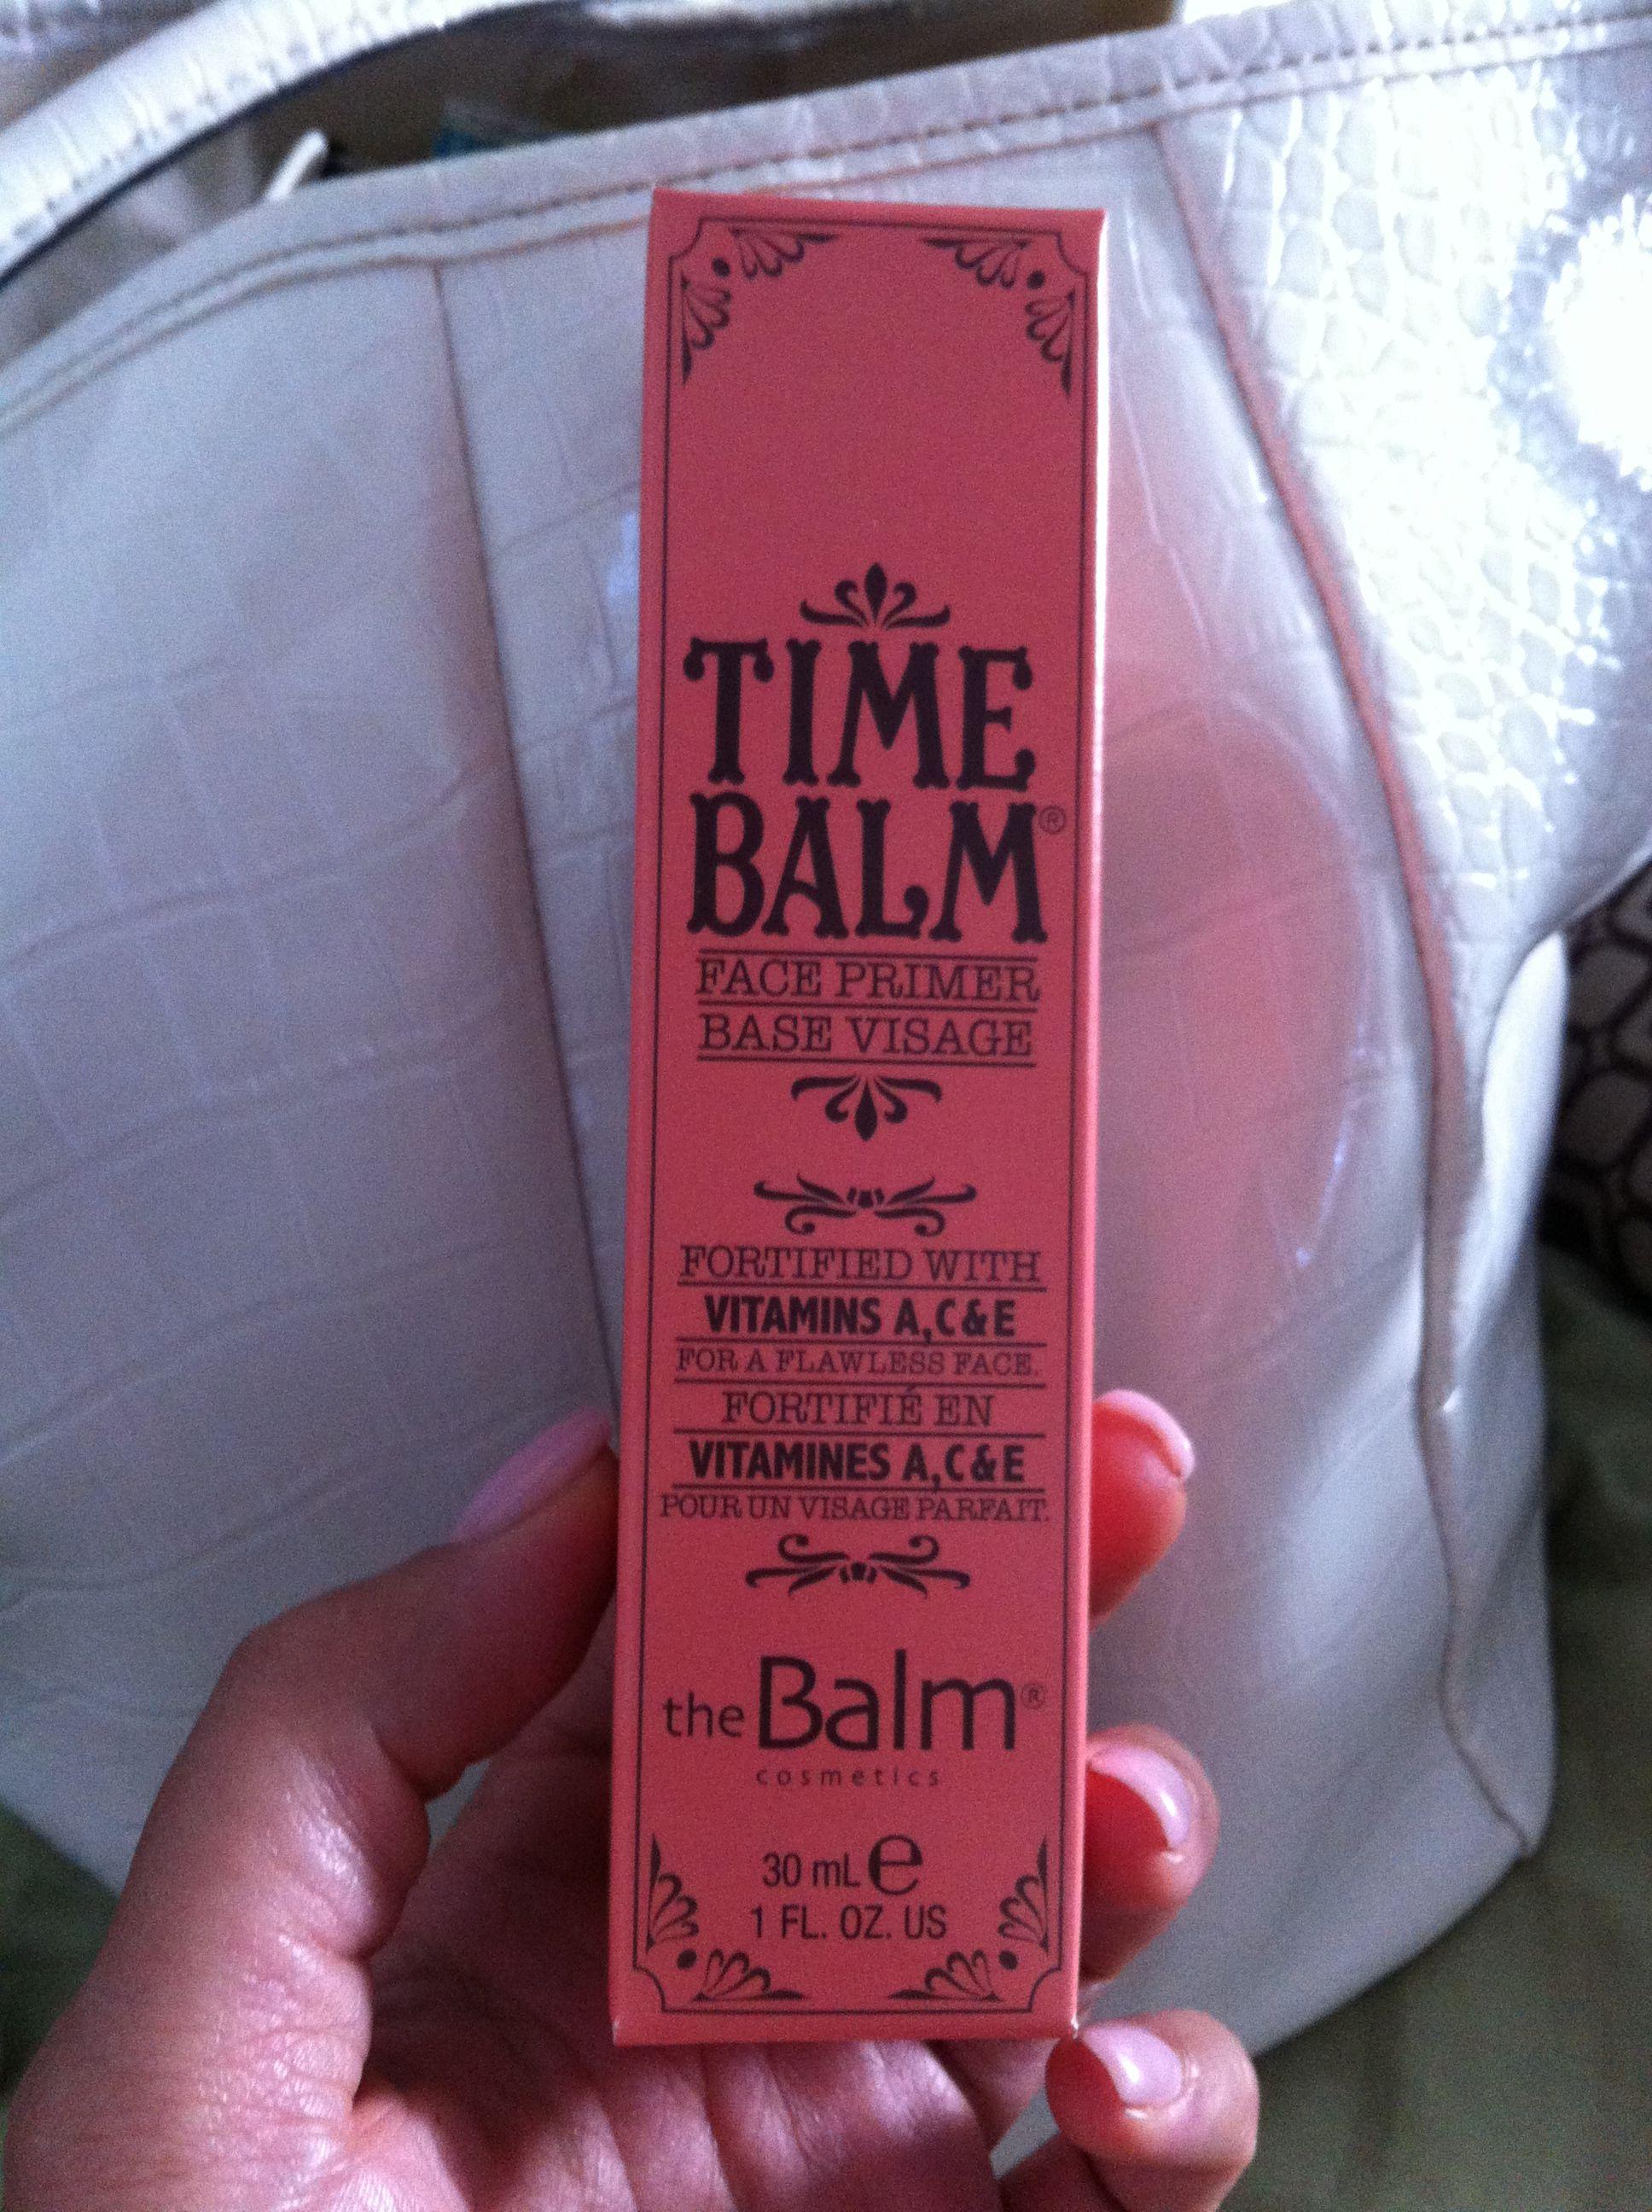 Time Balm face primer....a must-have in my makeup bag!